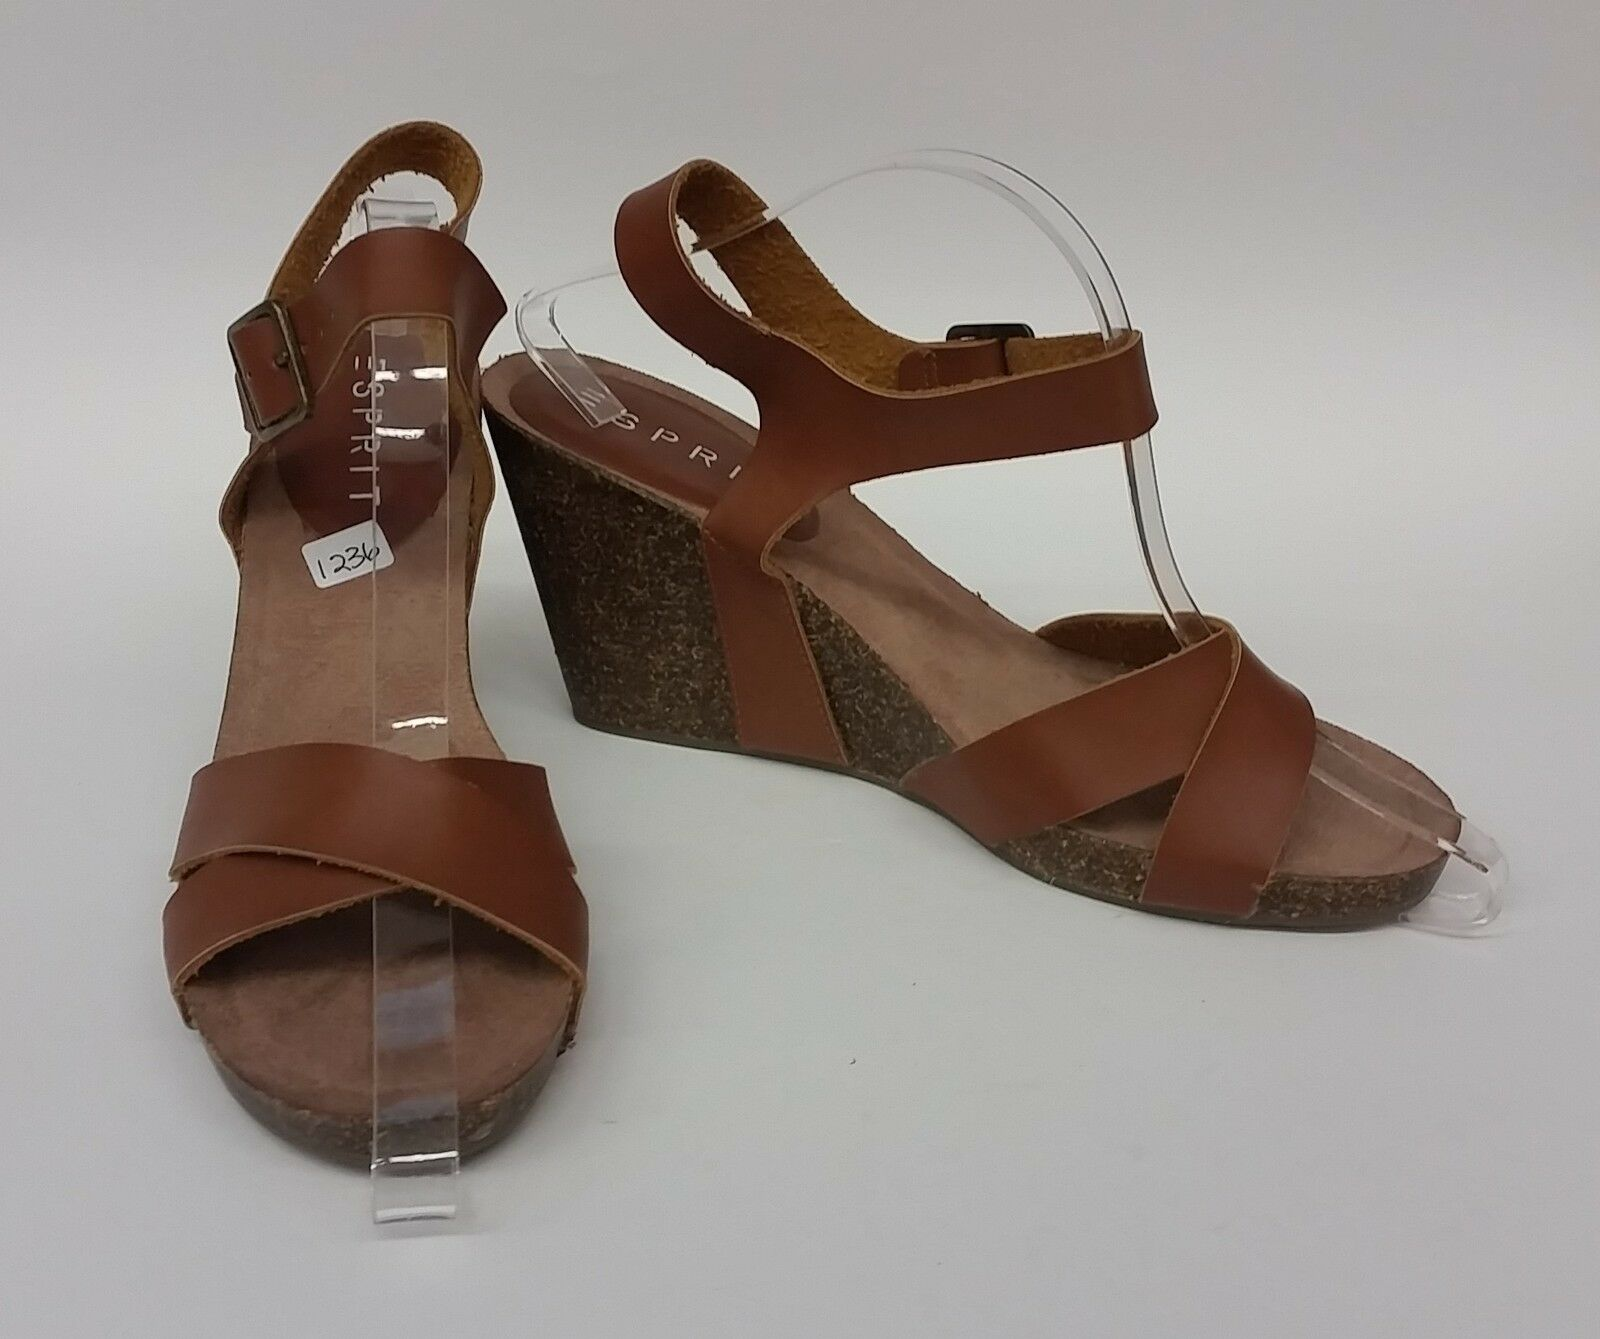 Esprit shoes Sandals Brown Wedges Heels Strappy Helena Womens Size 9 M